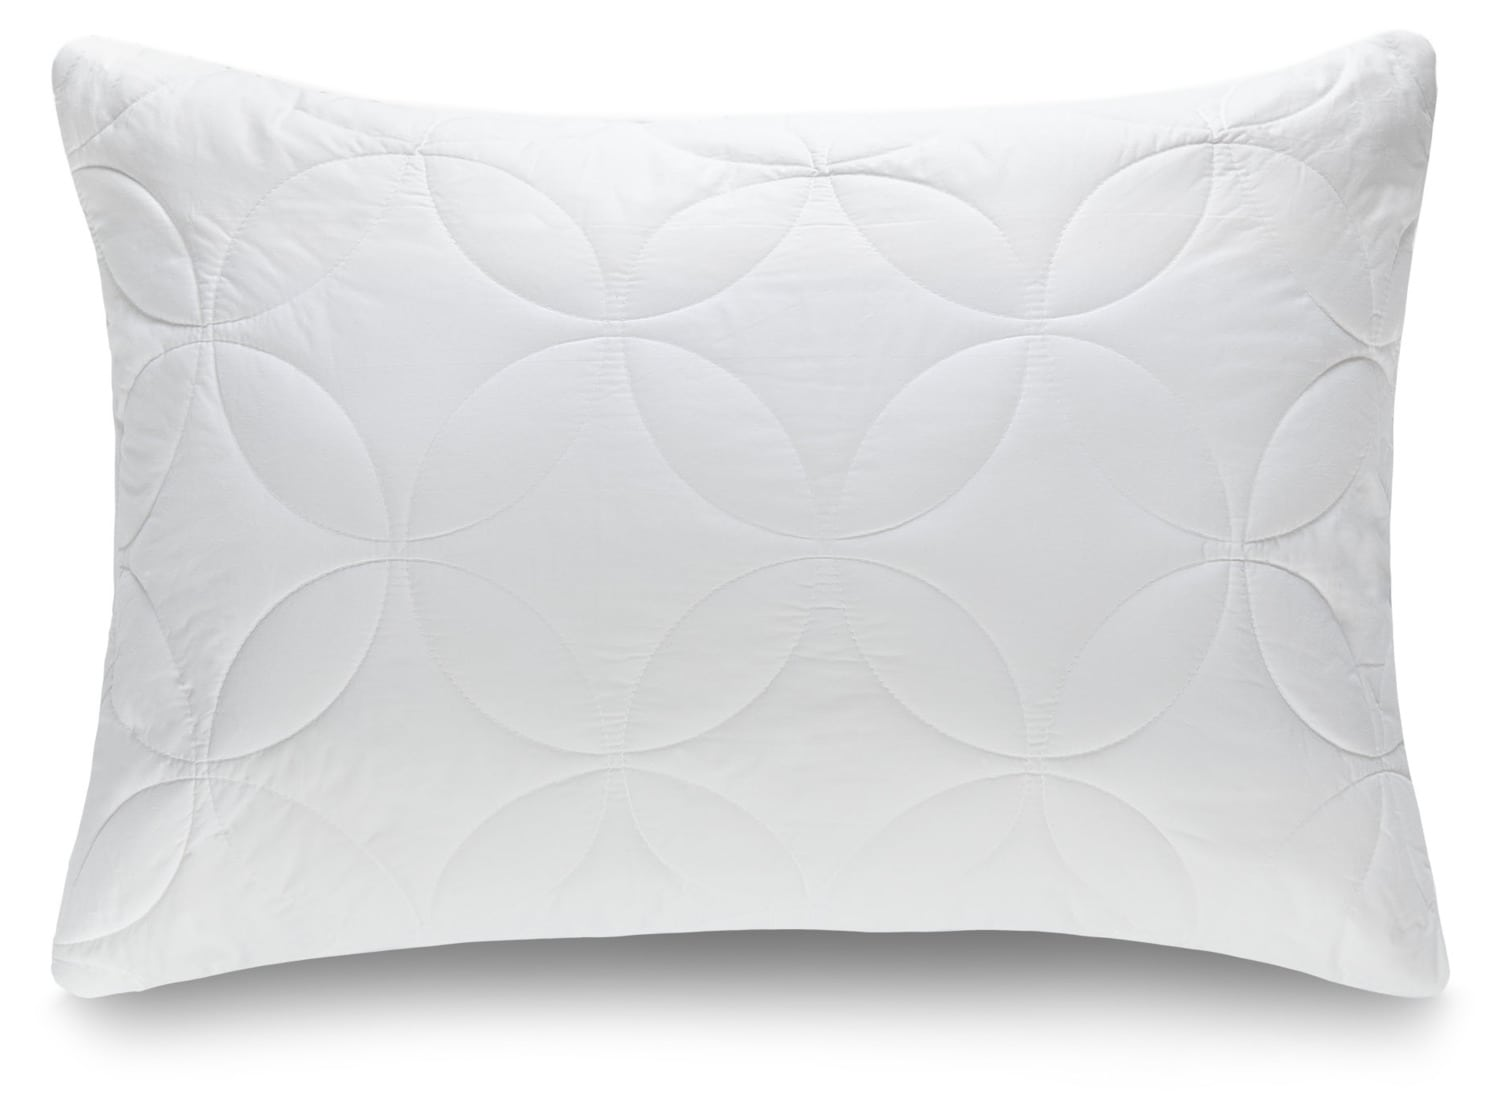 tempurpedic tempursoft and lofty queen size pillow - Tempurpedic Pillows